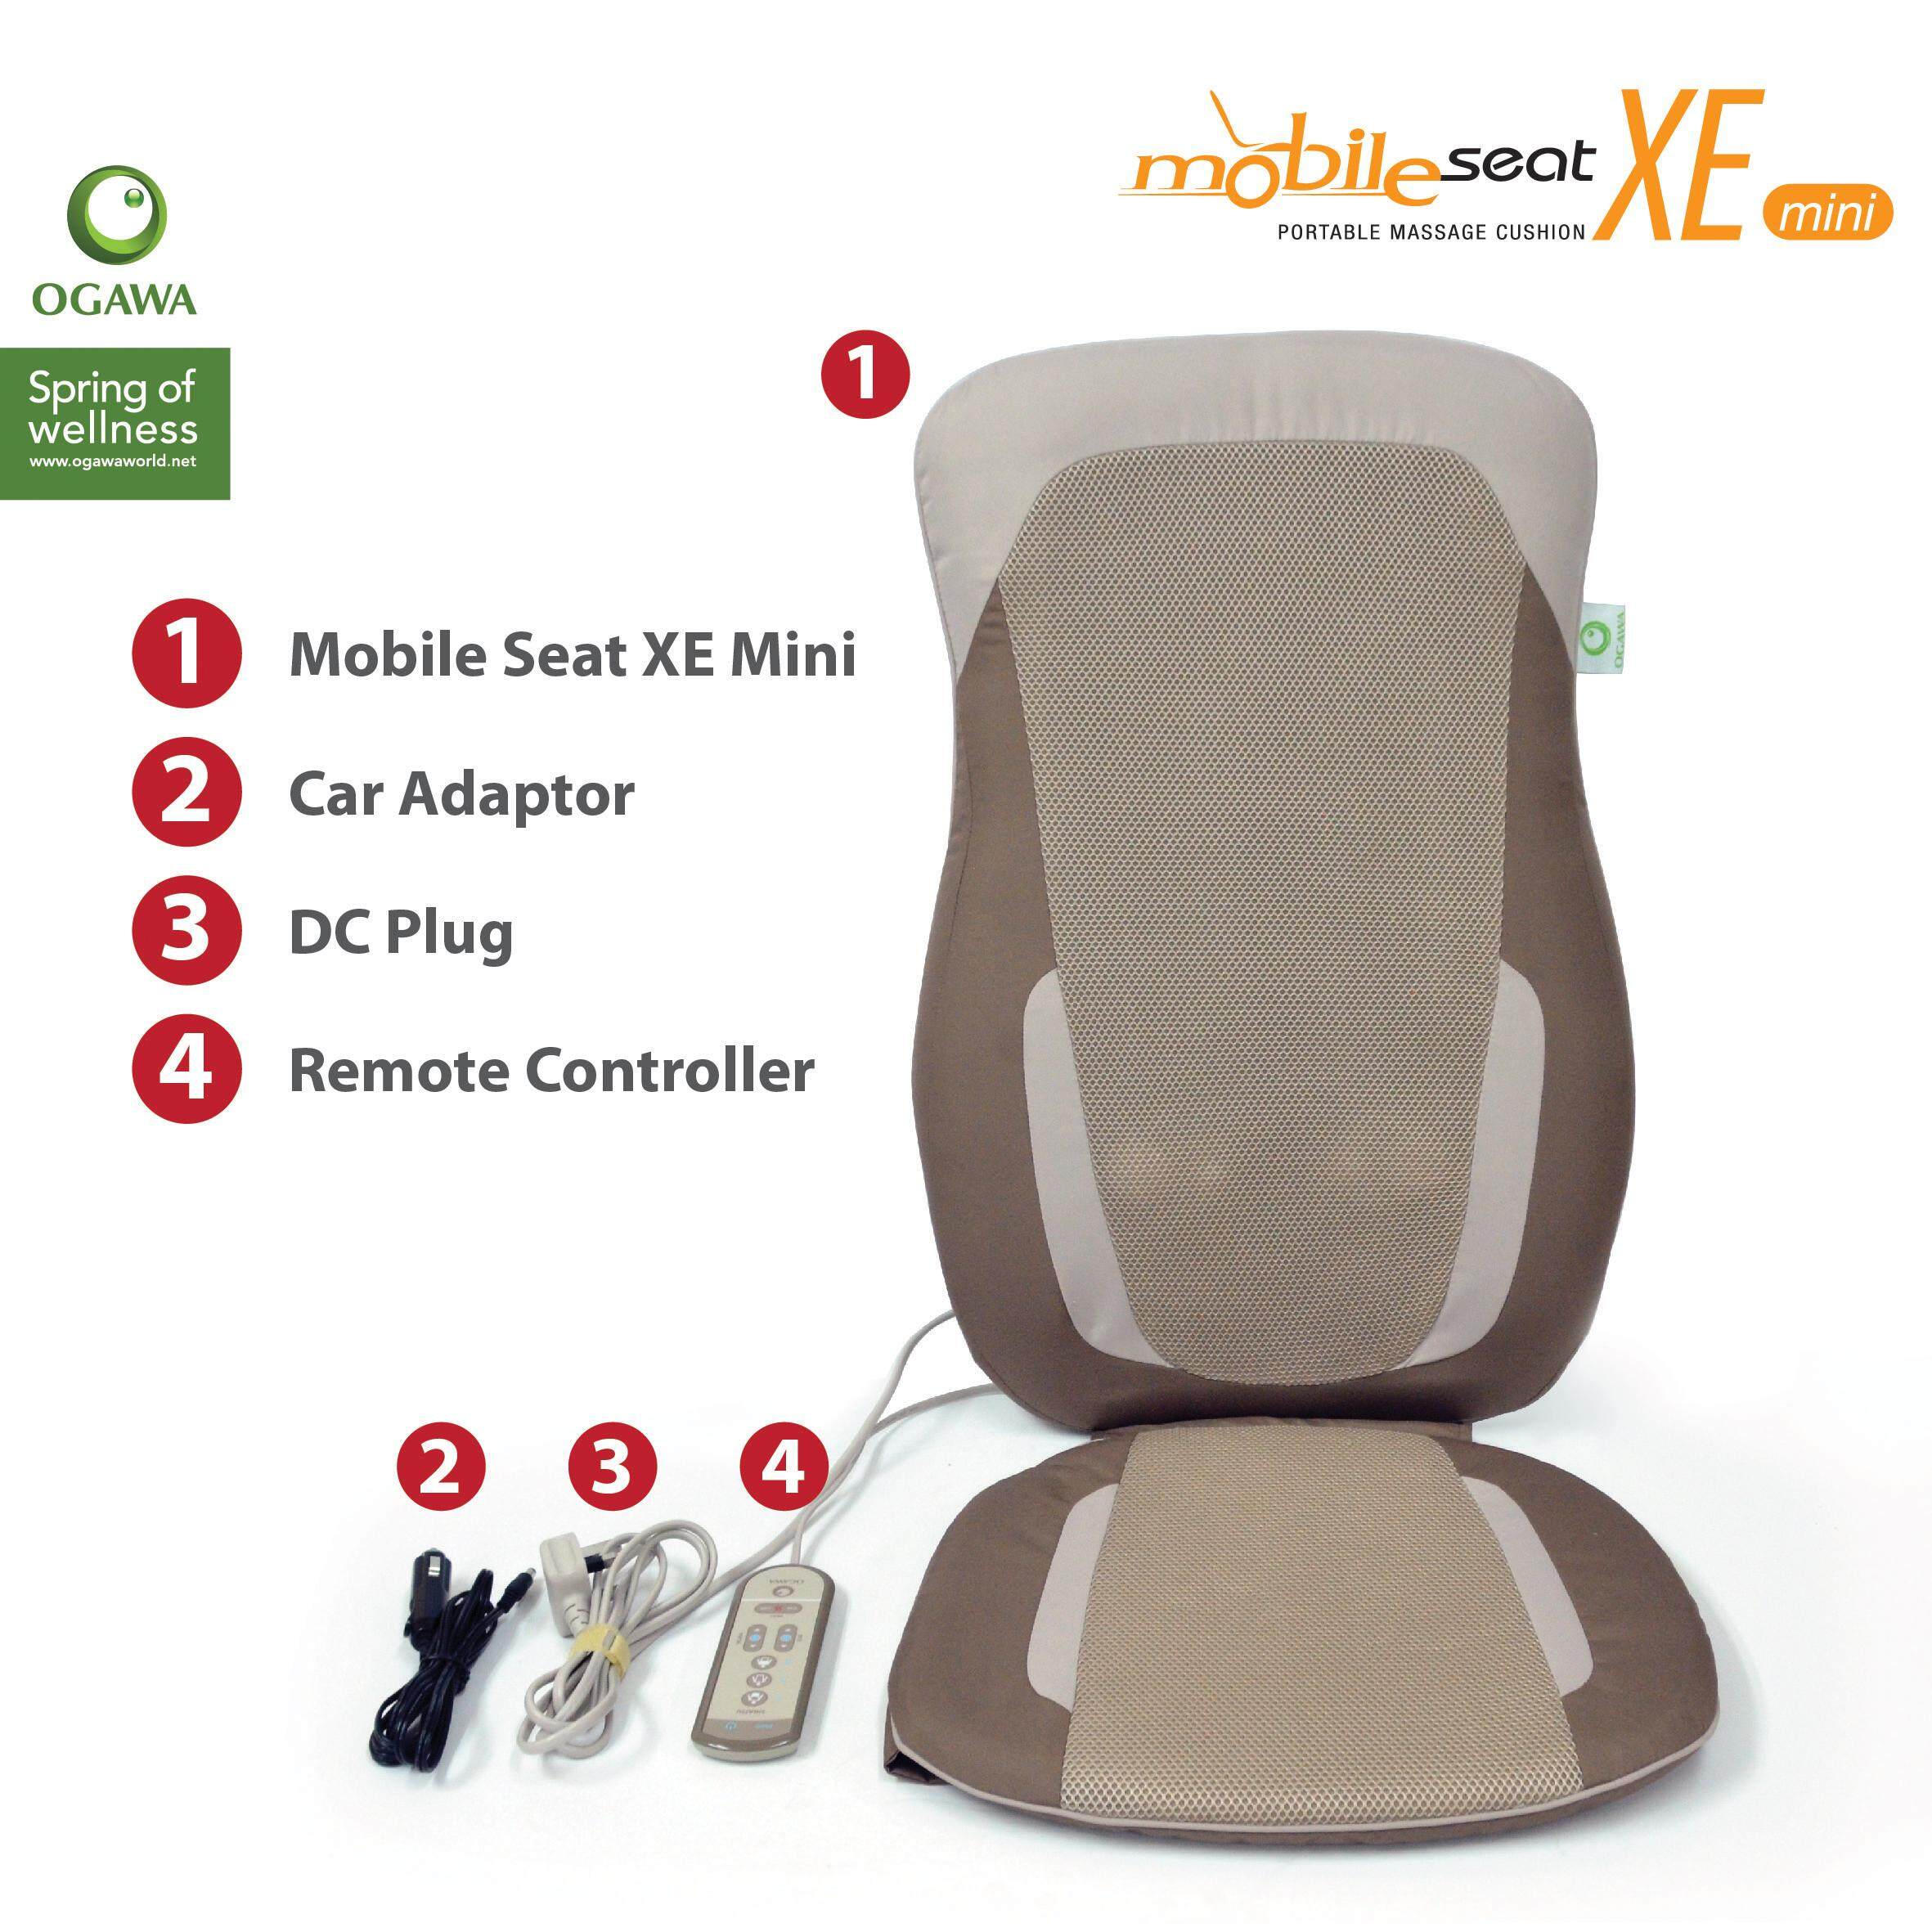 ogawa massage chair outdoor hanging swing with stand mobile seat xe mini portable cushion